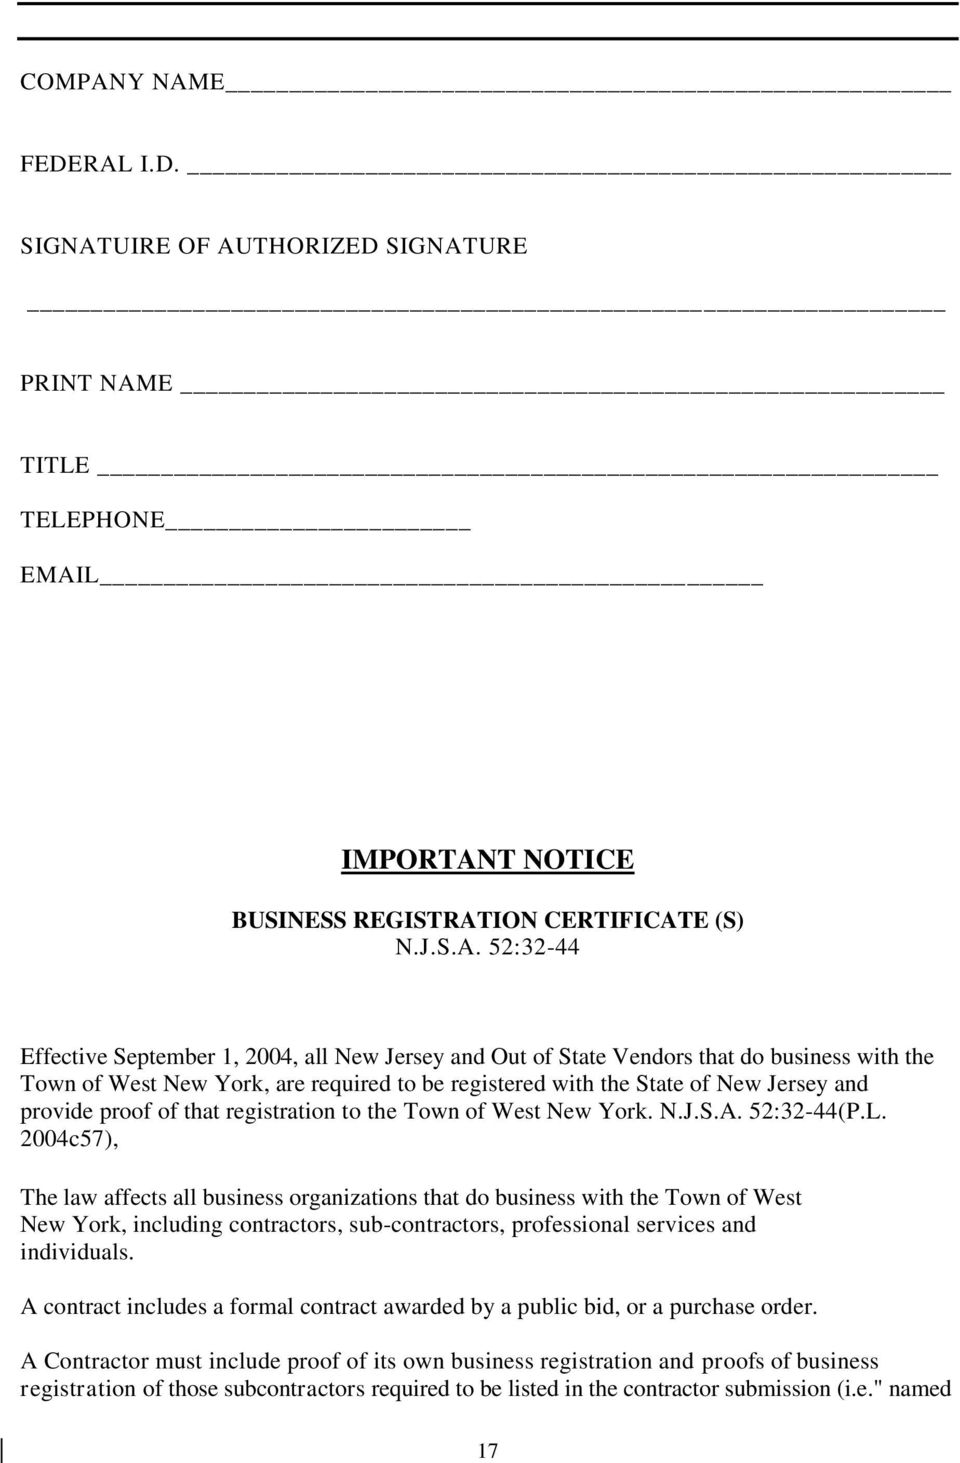 Jersey and Out of State Vendors that do business with the Town of West New York, are required to be registered with the State of New Jersey and provide proof of that registration to the Town of West